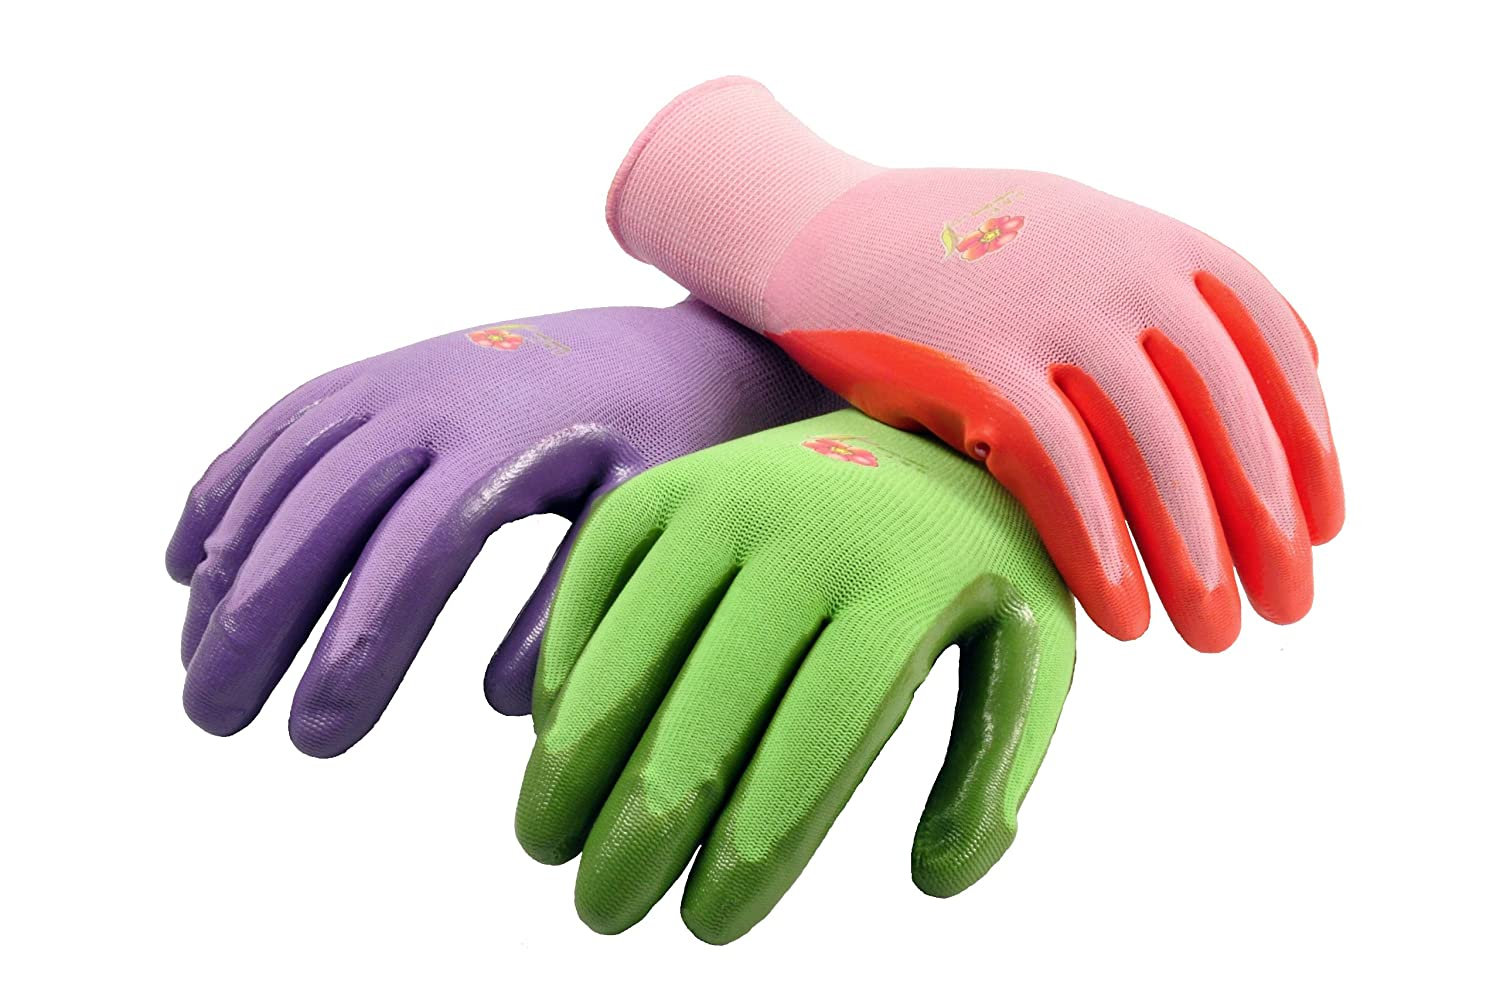 Awesome G U0026 F 15226M Womenu0027s Garden Gloves, Nitrile Coated Work Gloves, Assorted  Colors. Womenu0027s Medium, 6 Pair Pack   Work Gloves   Amazon.com